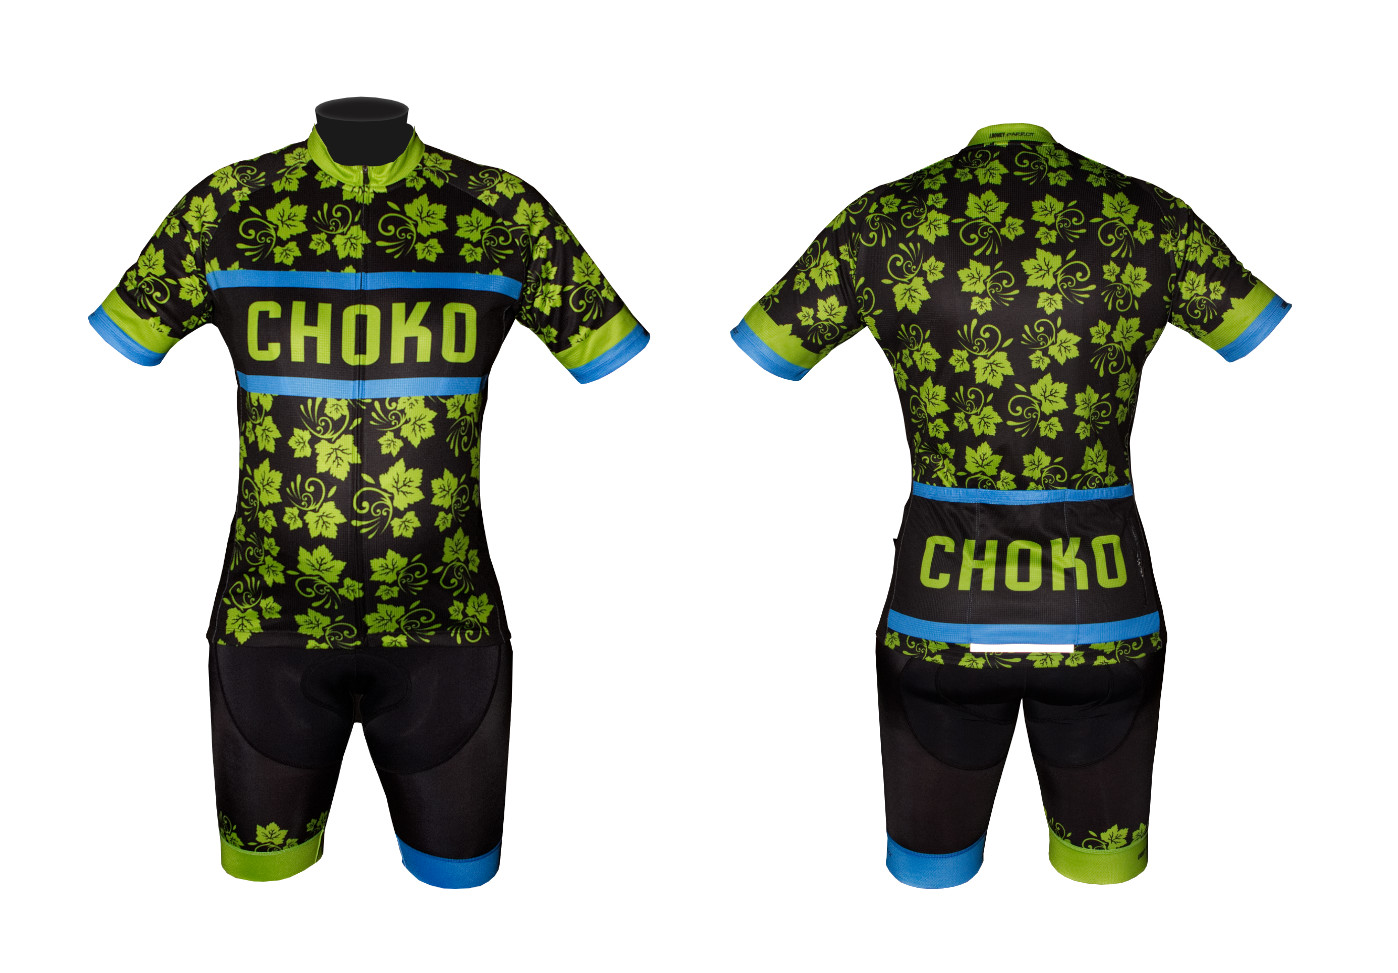 custom designed cycling jersey bib knicks shorts